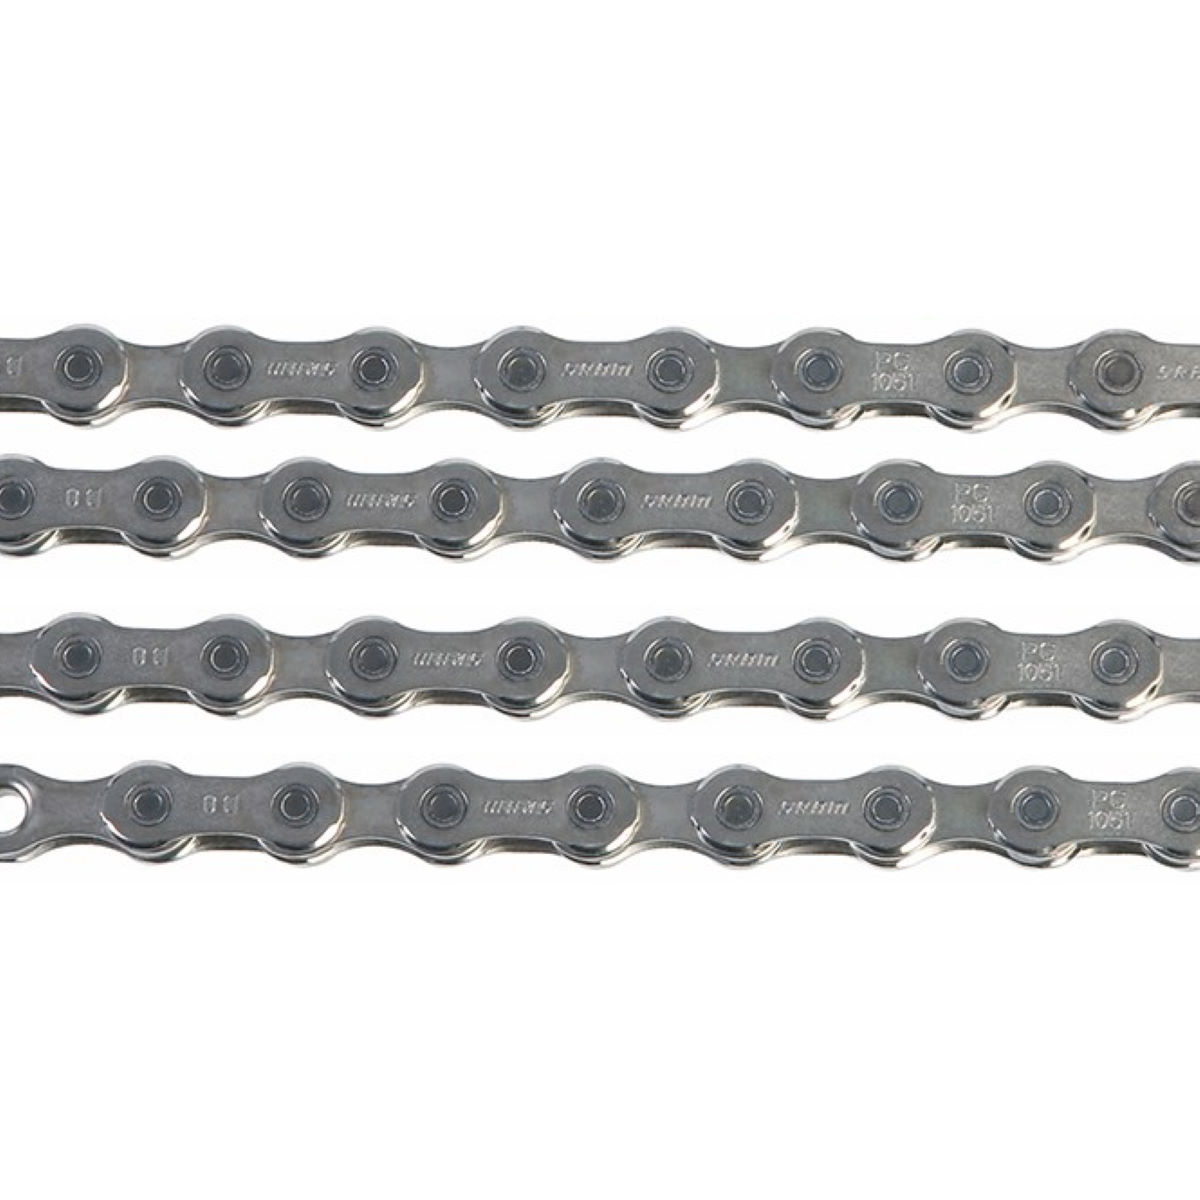 Sram Pc1051 10 Speed Chain With Powerlock - 114 Links Silver  Chains